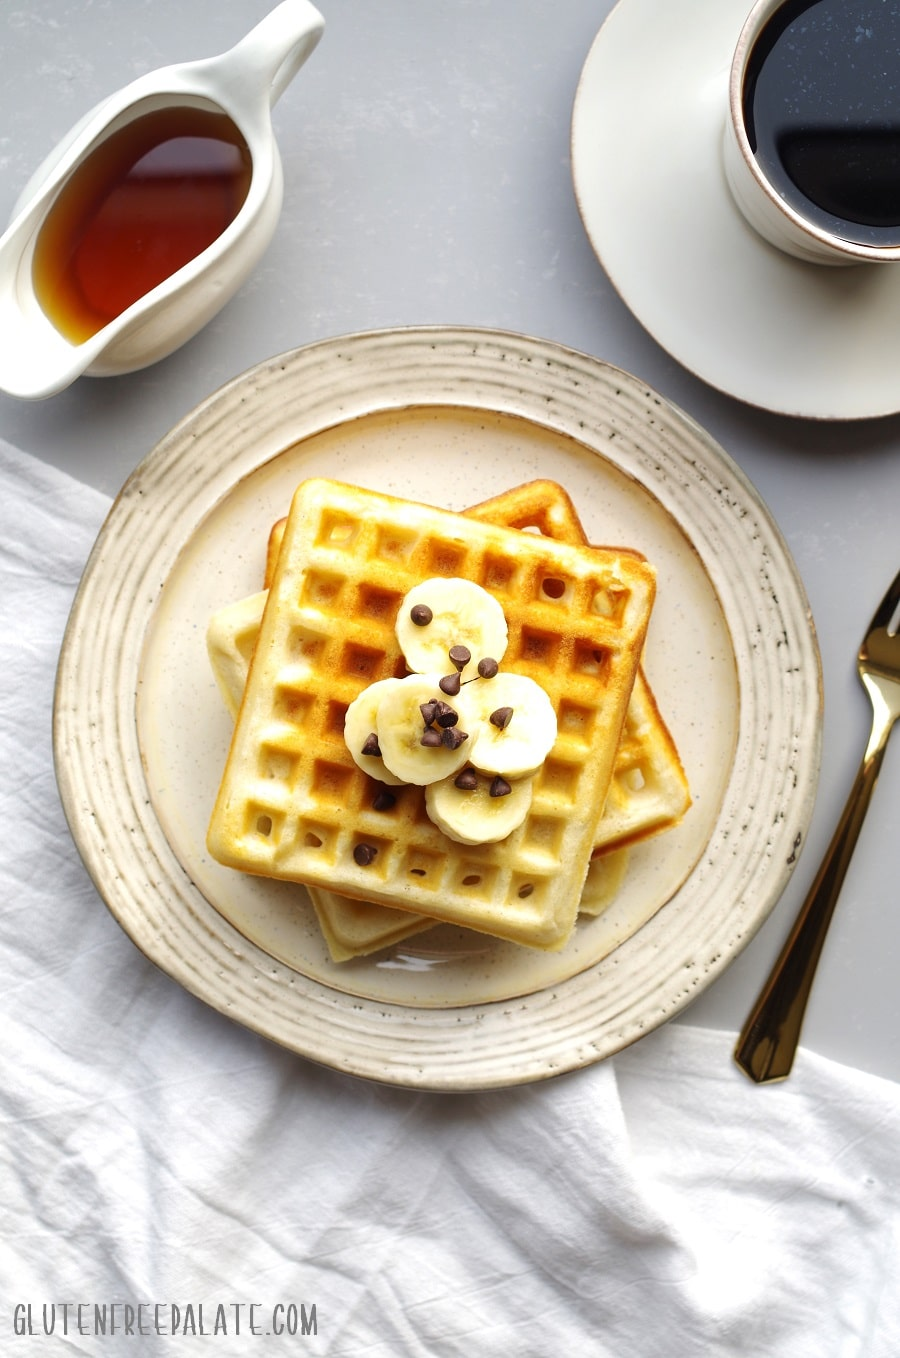 top down view of three waffles stacked on a cream colored plate, topped with sliced bananads next to a cup of coffee and container of maple syrup